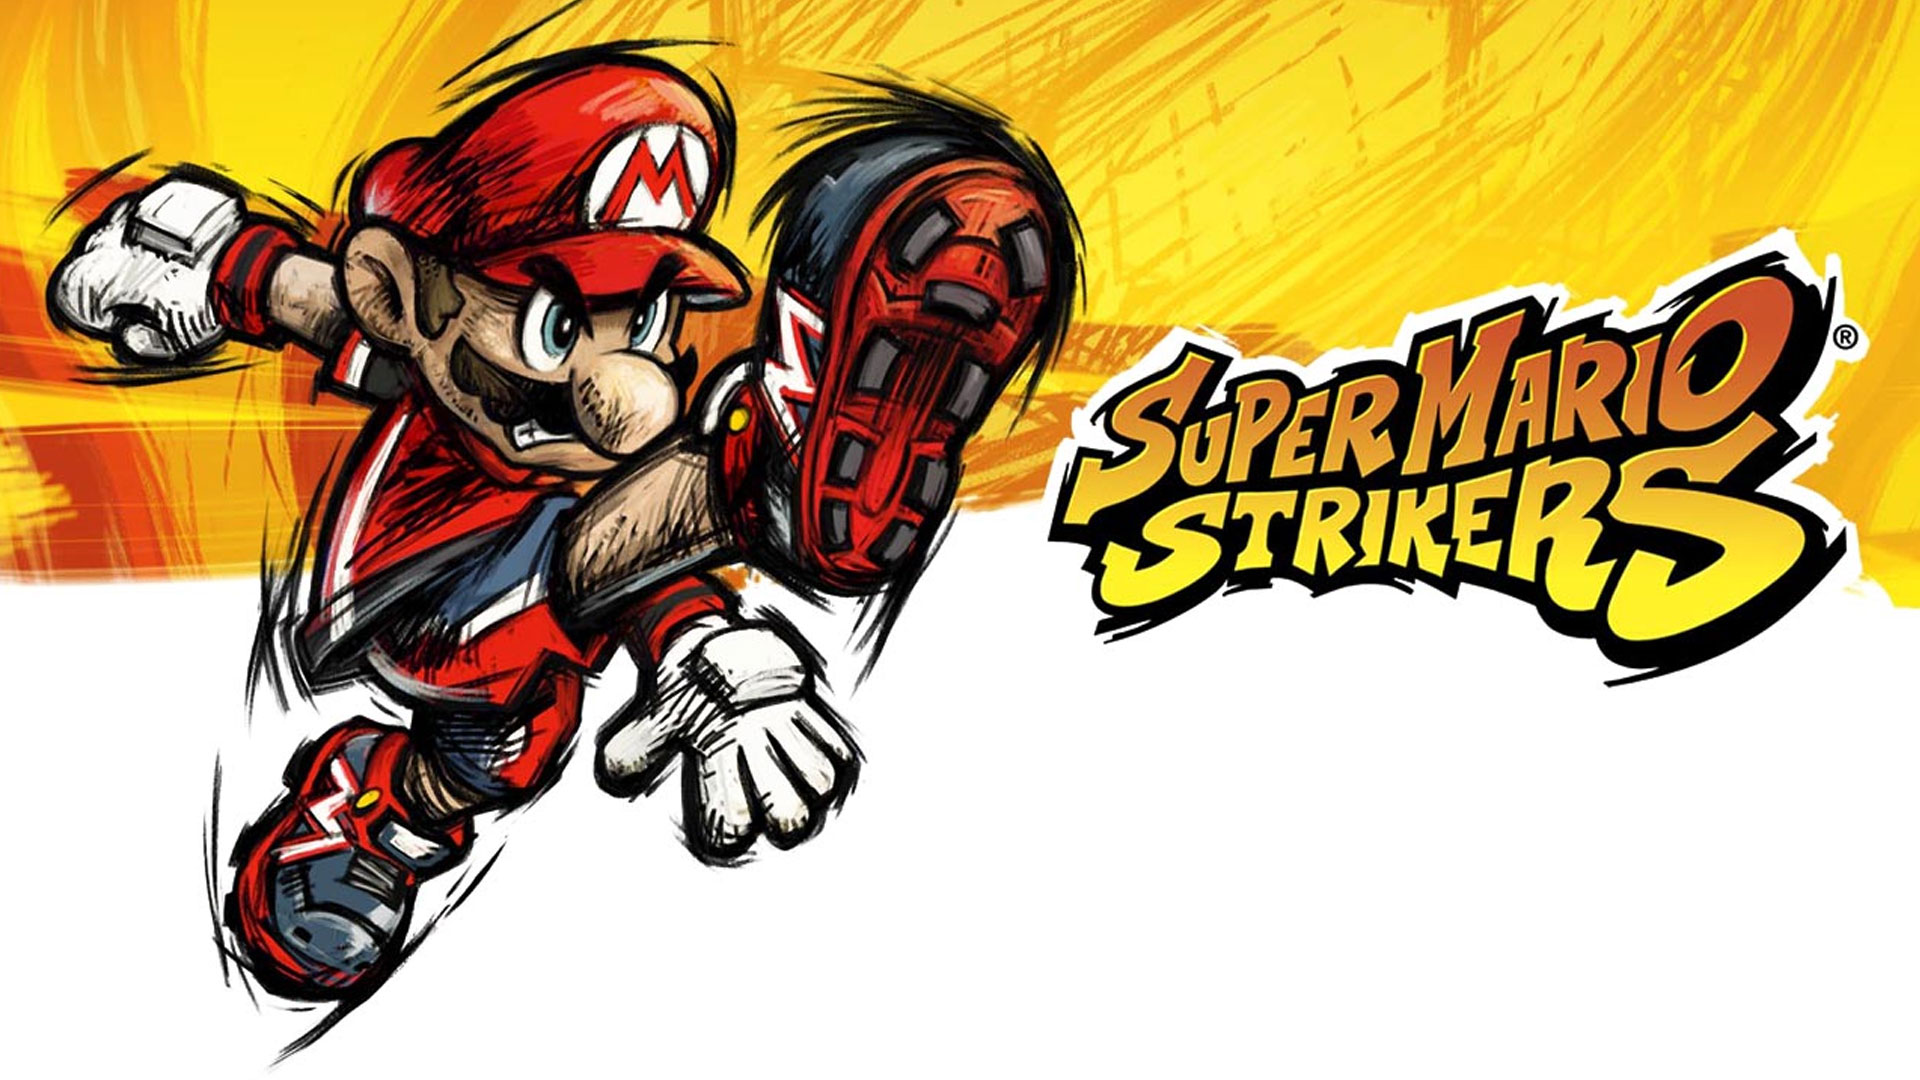 Super Mario Strikers Wallpaper Nintendo Switch